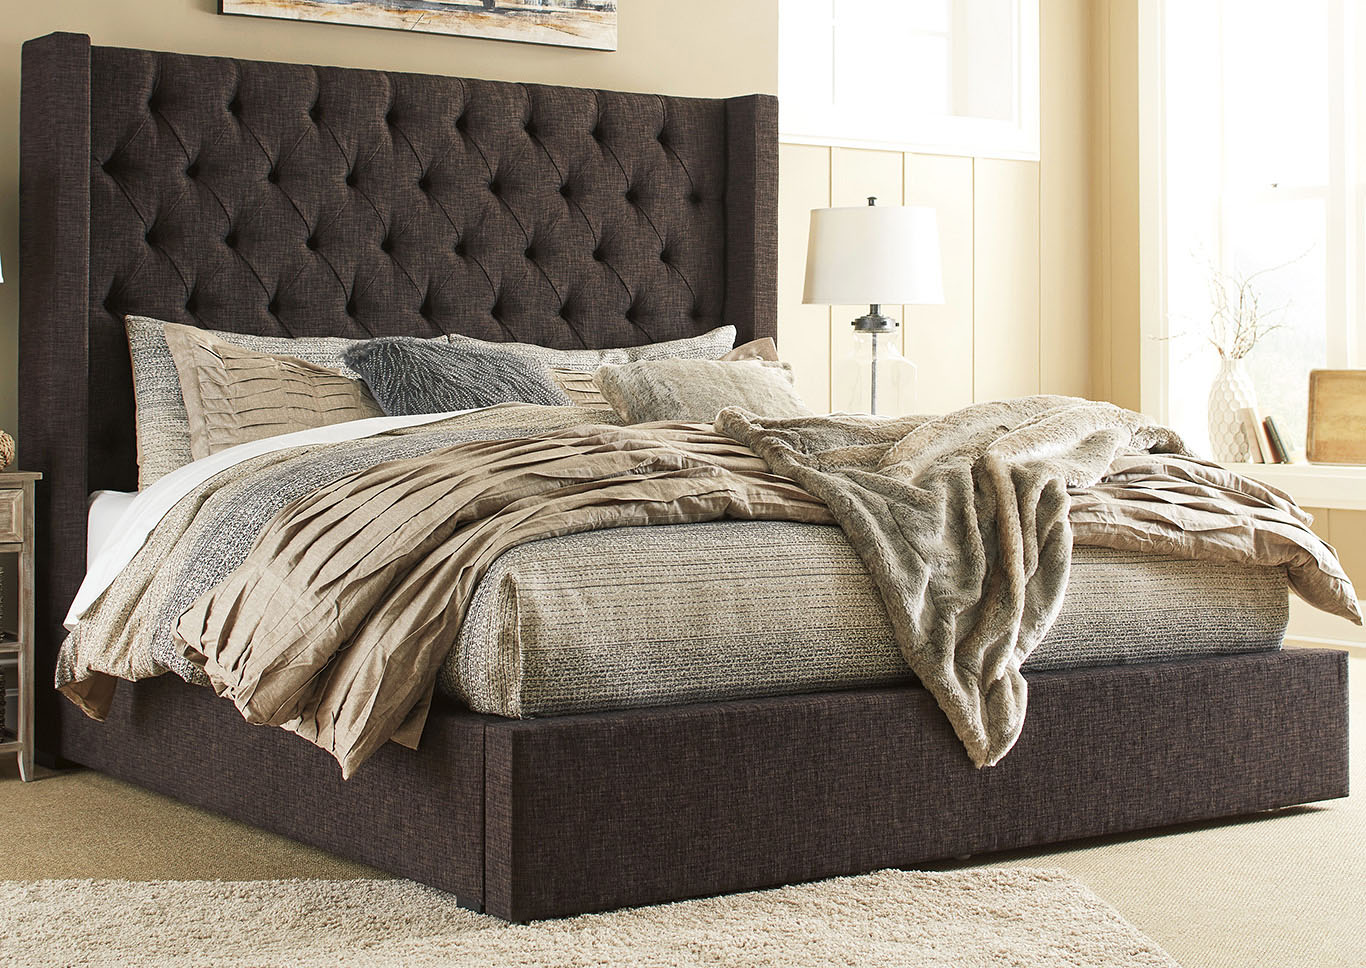 Norrister Brown California King Upholstered Storage Bed,Signature Design By Ashley